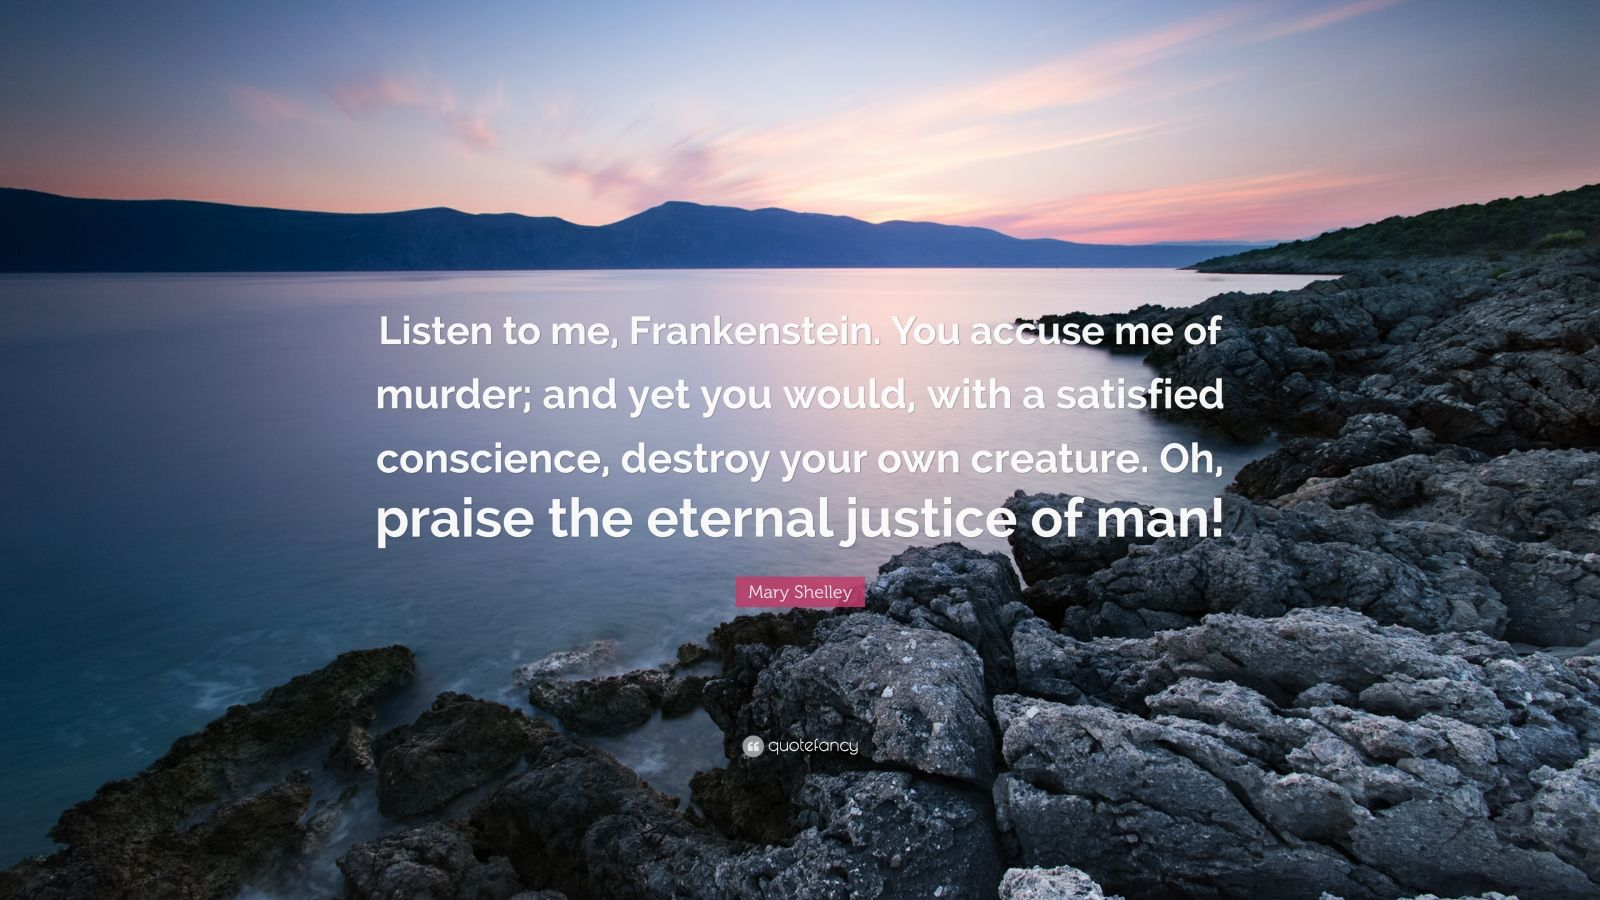 "Mary Shelley Quote: ""Listen to me, Frankenstein. You accuse me of murder; and yet you would, with a satisfied conscience, destroy your own creature. Oh, praise the eternal justice of man!"""